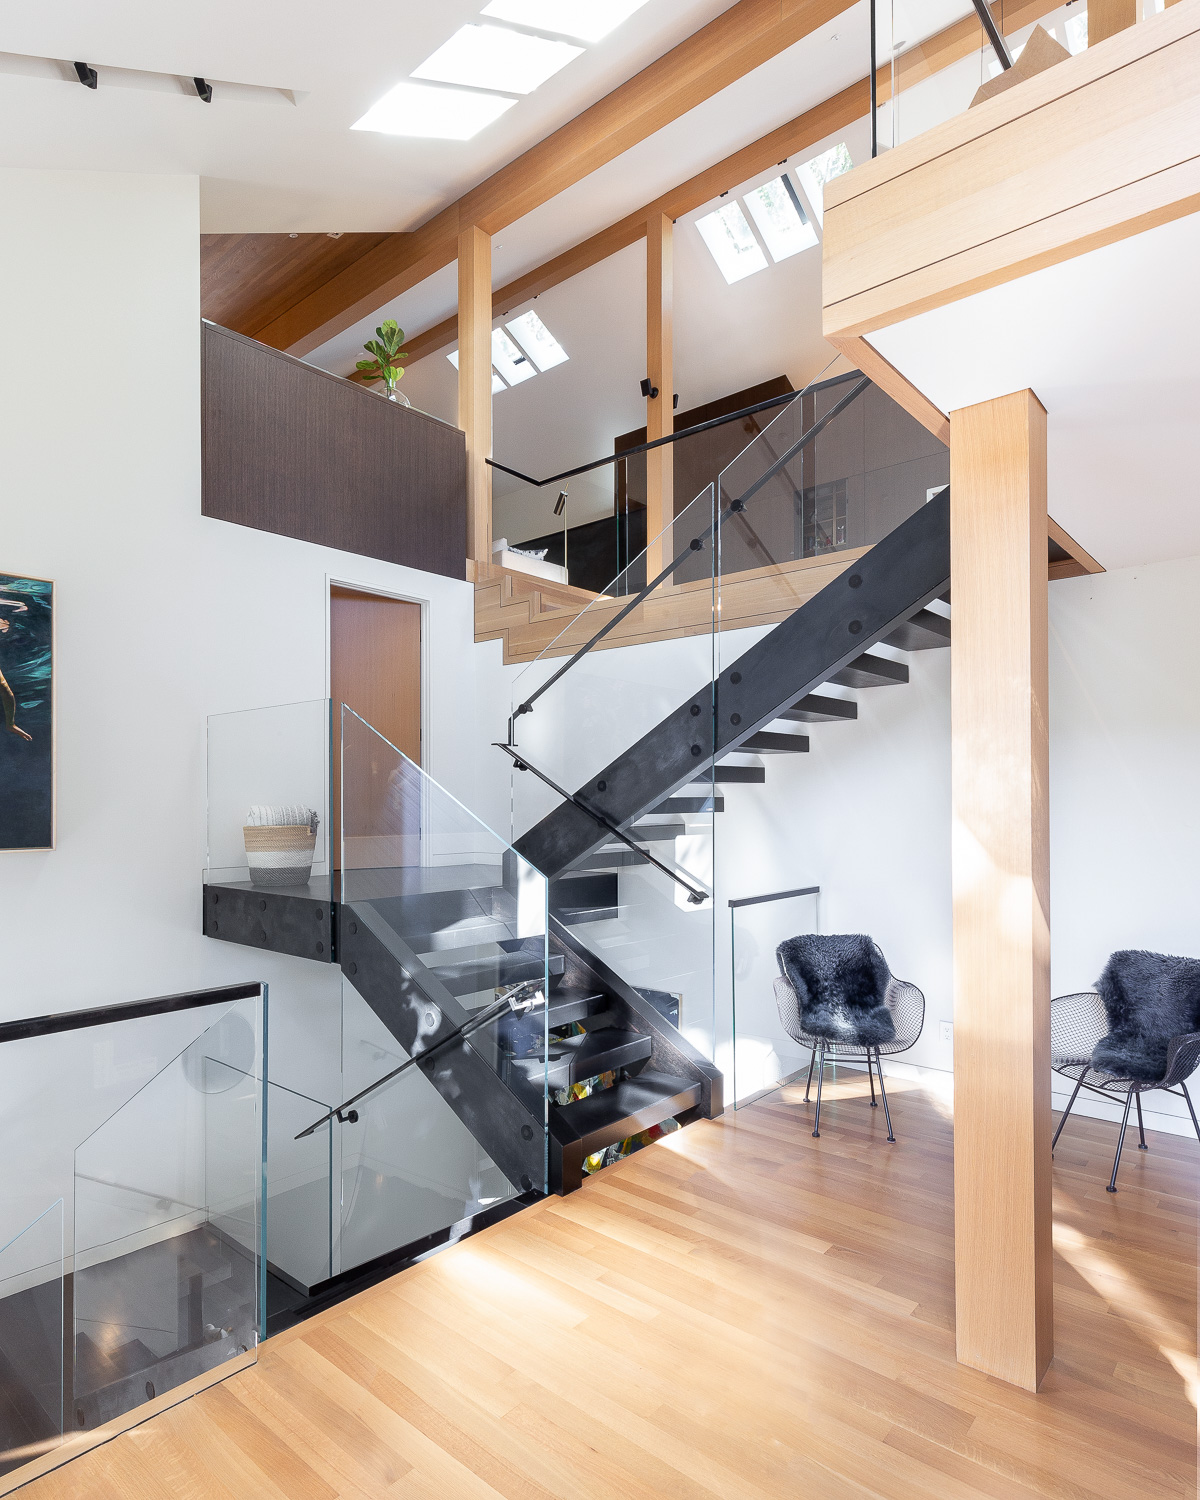 Architect Chris Parlette laid out an innovative, modern structure for the space that combined industrial elements without seeming empty or cold.